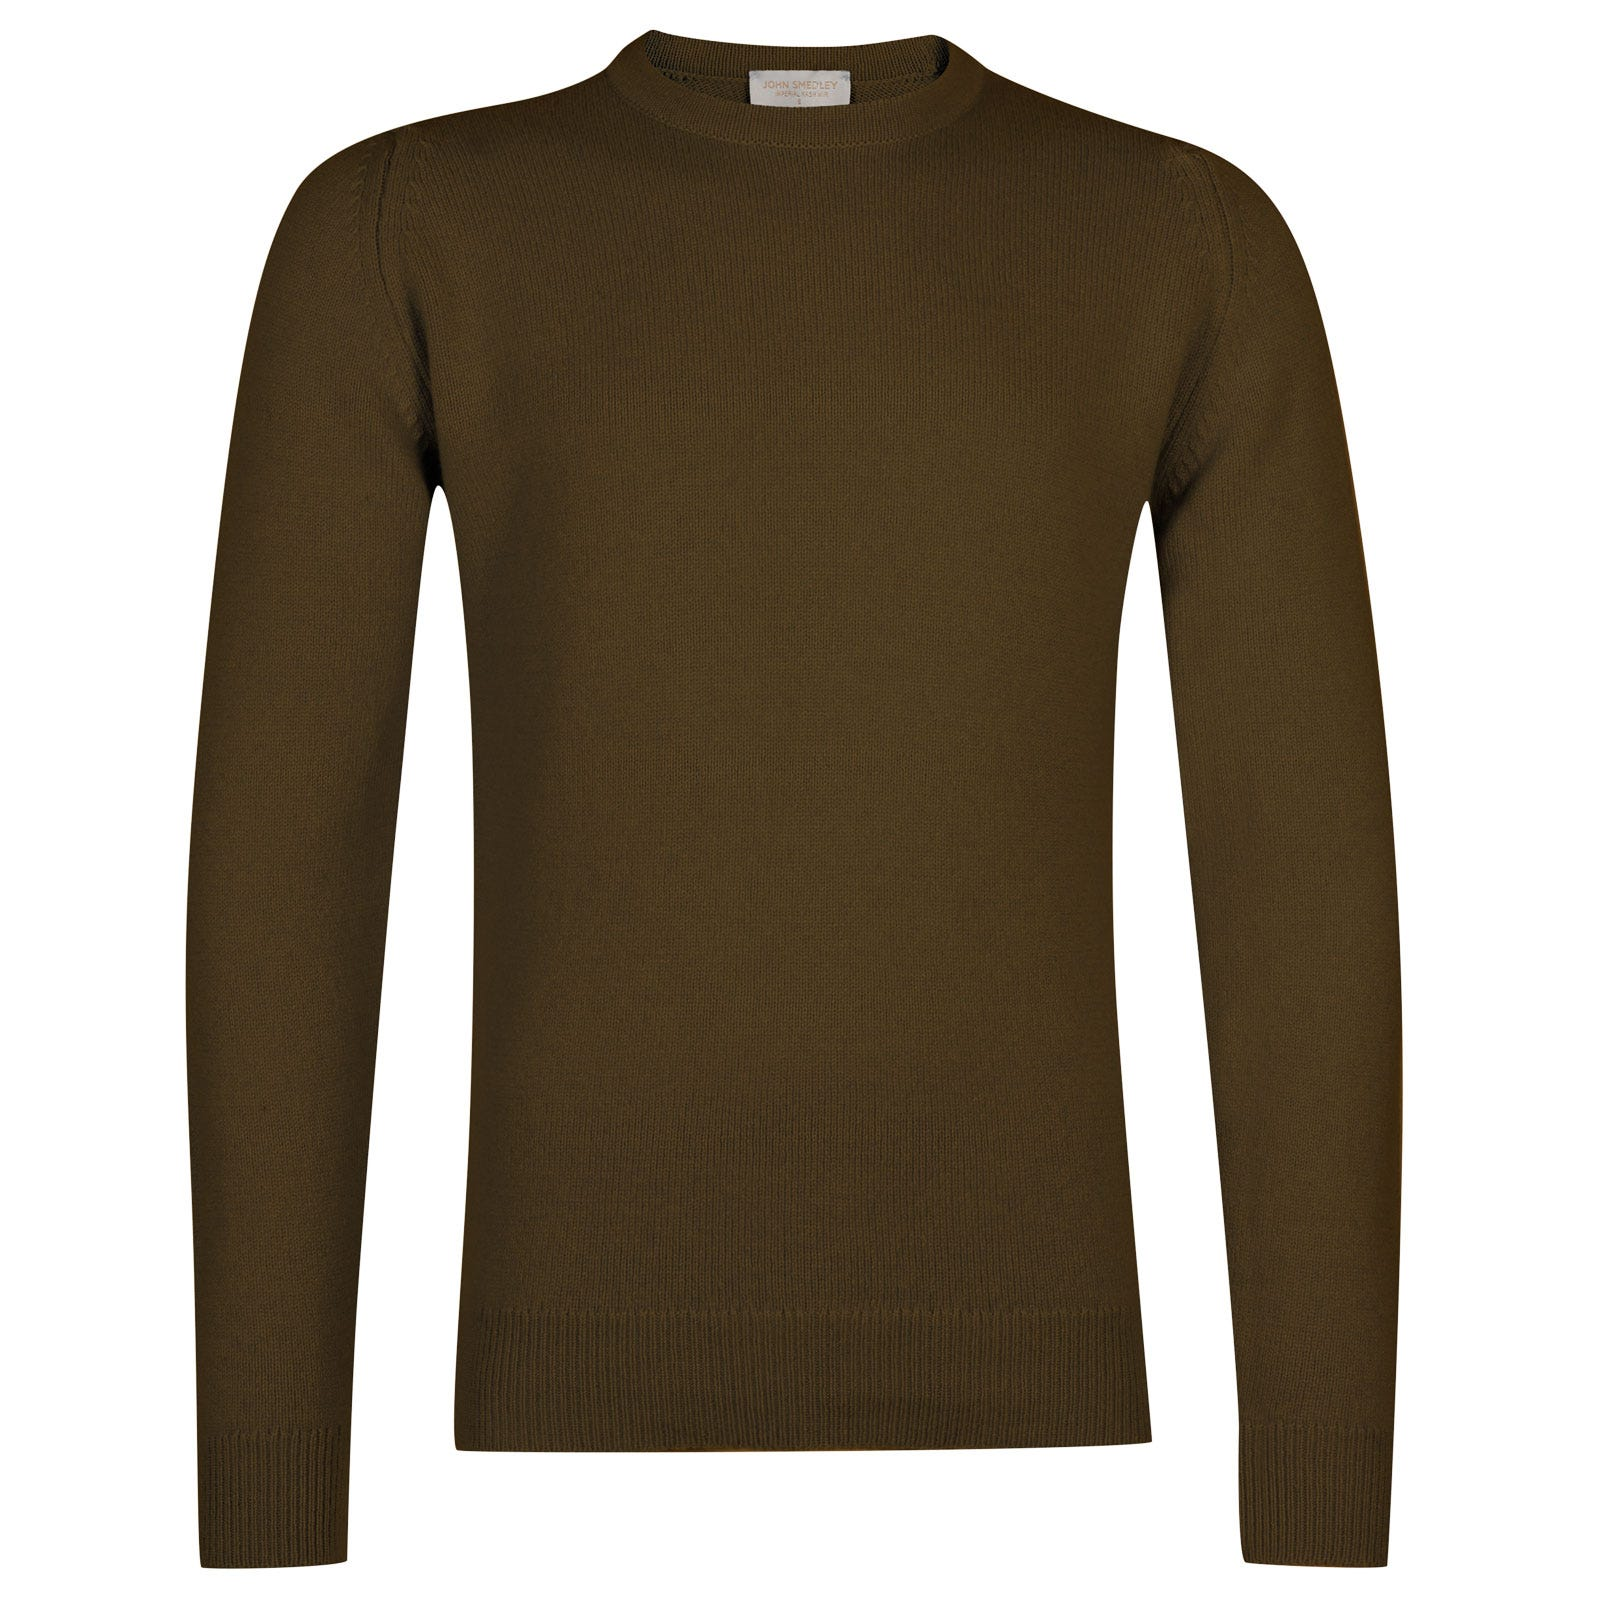 John Smedley Crowford Wool and Cashmere Pullover in Kielder Green-S